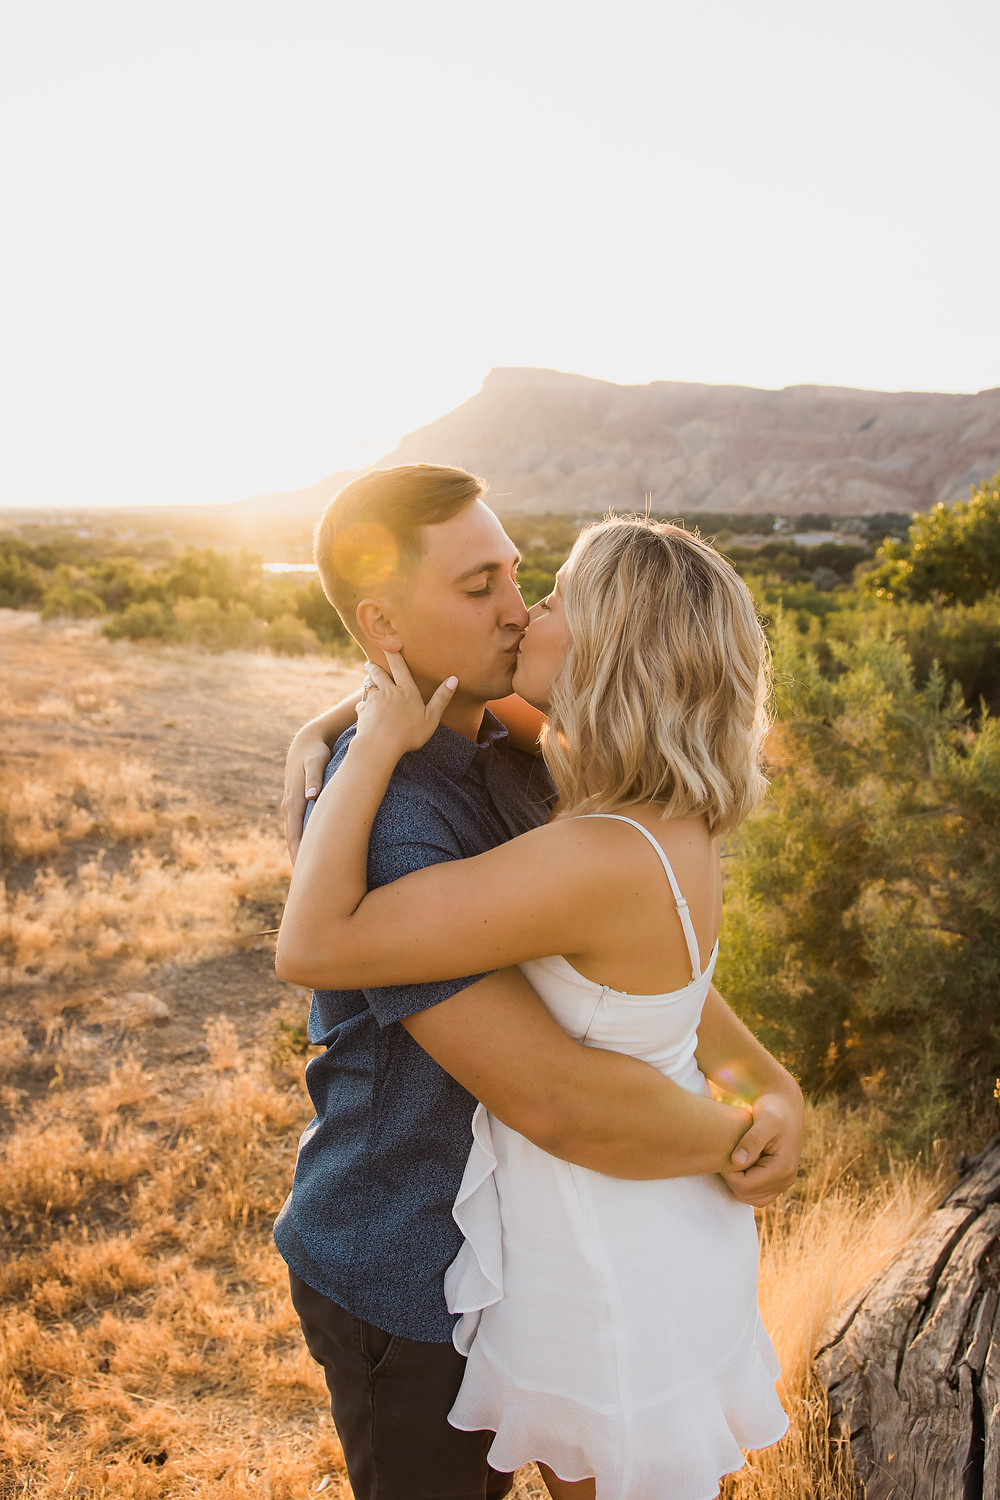 Mt Garfield sunset view with kissing couple engagement photos Palisade Colorado